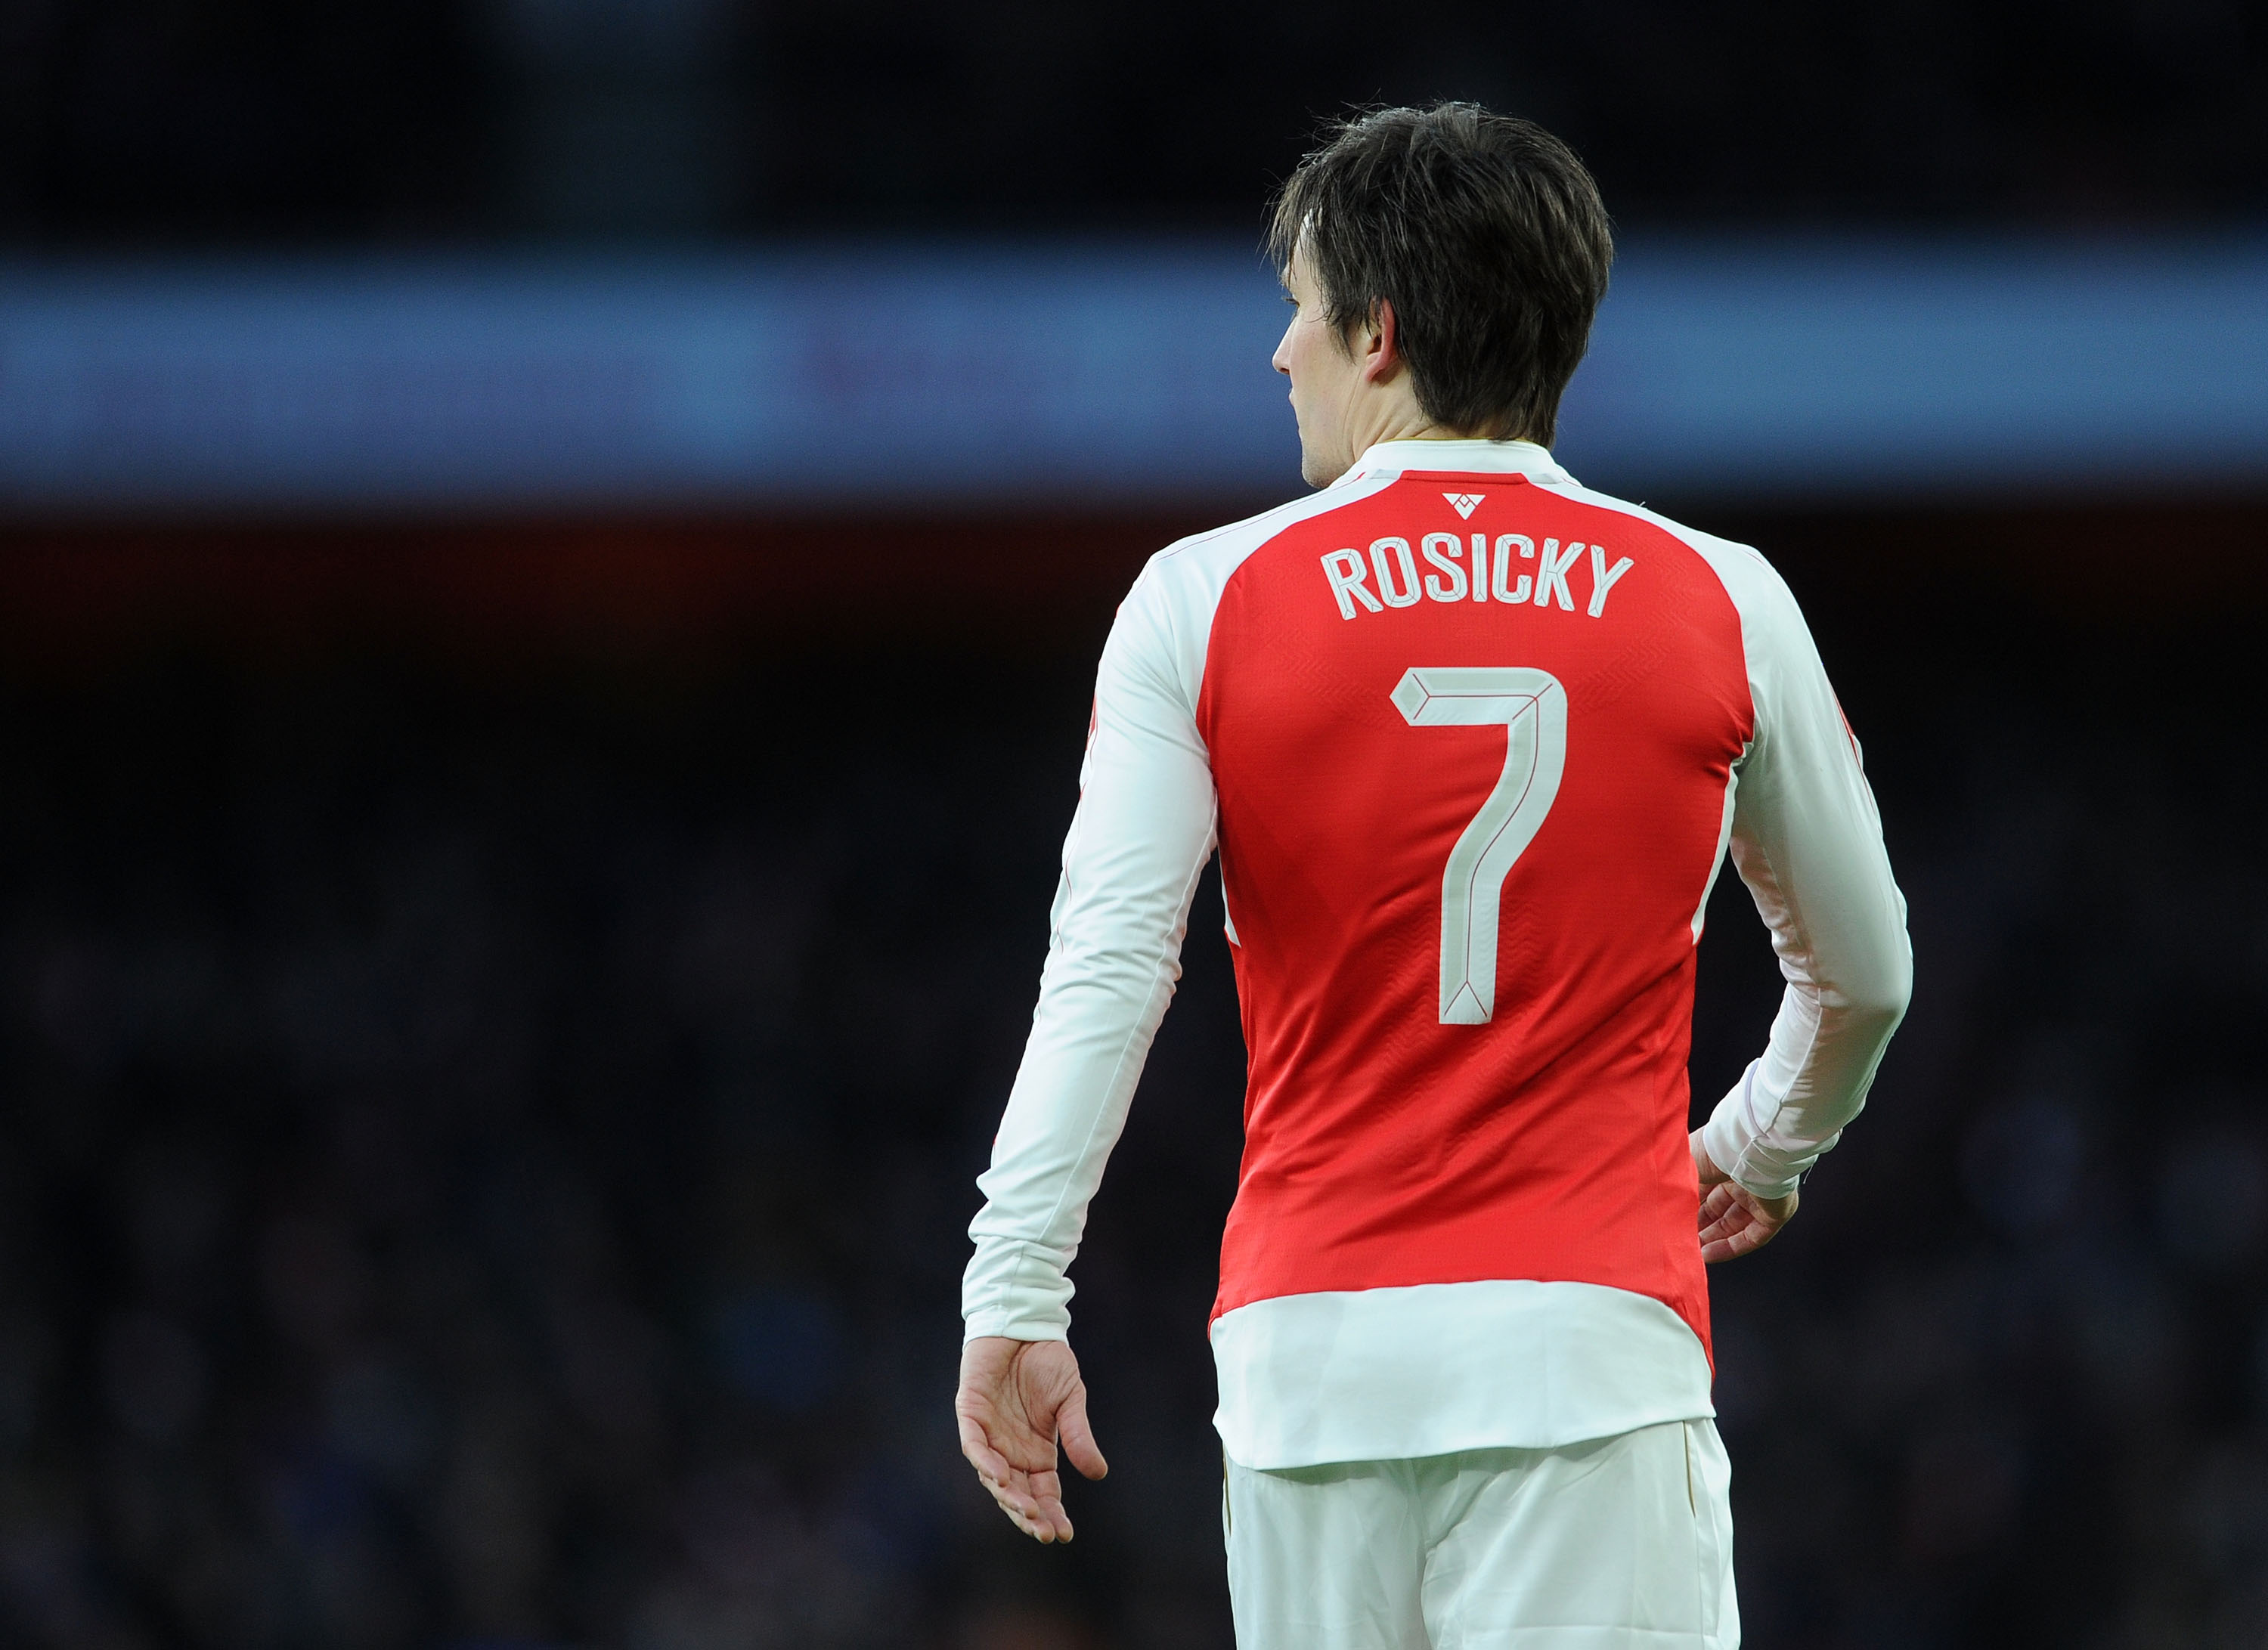 Rosicky: Emirates reception brought tears to my eyes and I will return